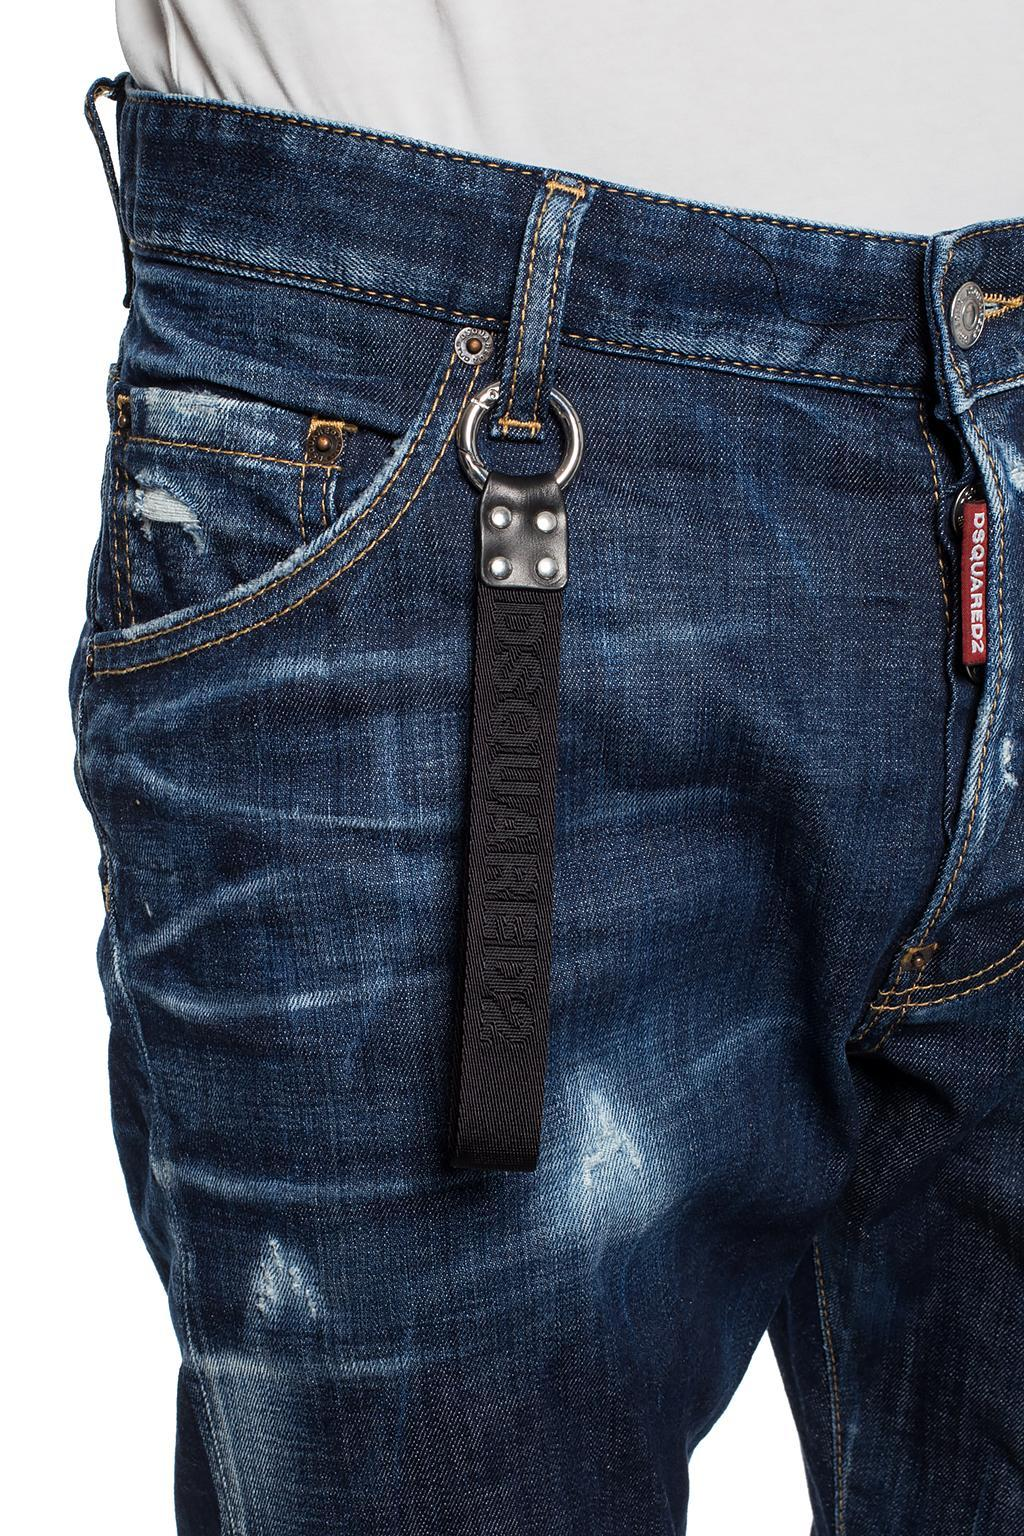 fbad6518154 Lyst - DSquared² 'classic Kenny Twist' Distressed Jeans in Blue for Men